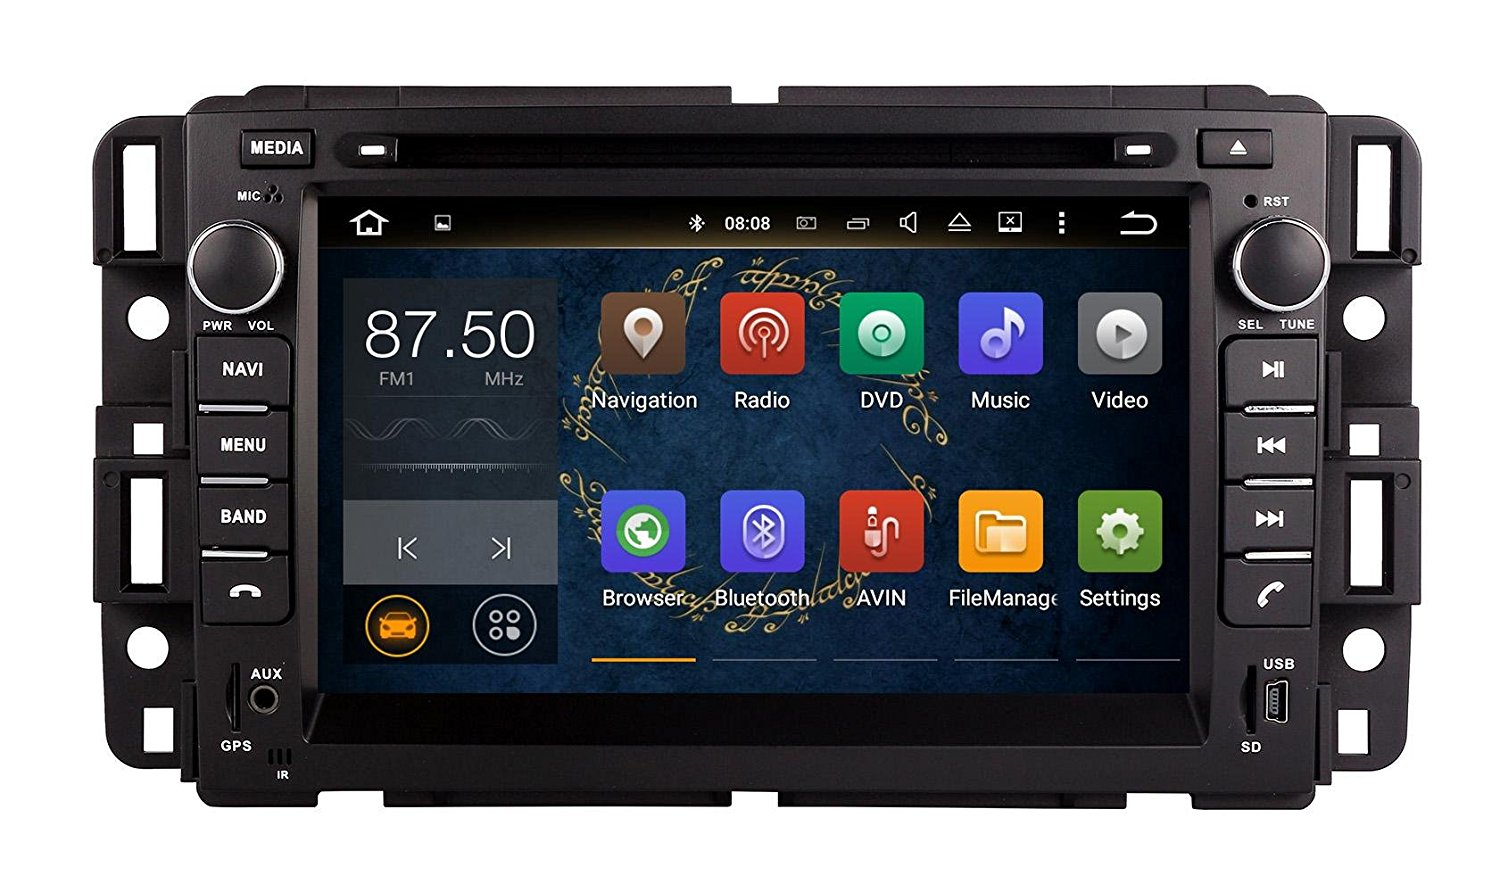 Get Quotations Xttek 7 Inch Hd 1024x600 Mulouch Screen Car Gps Navigation System For Gmc Yukon Chevrolet Tahoe